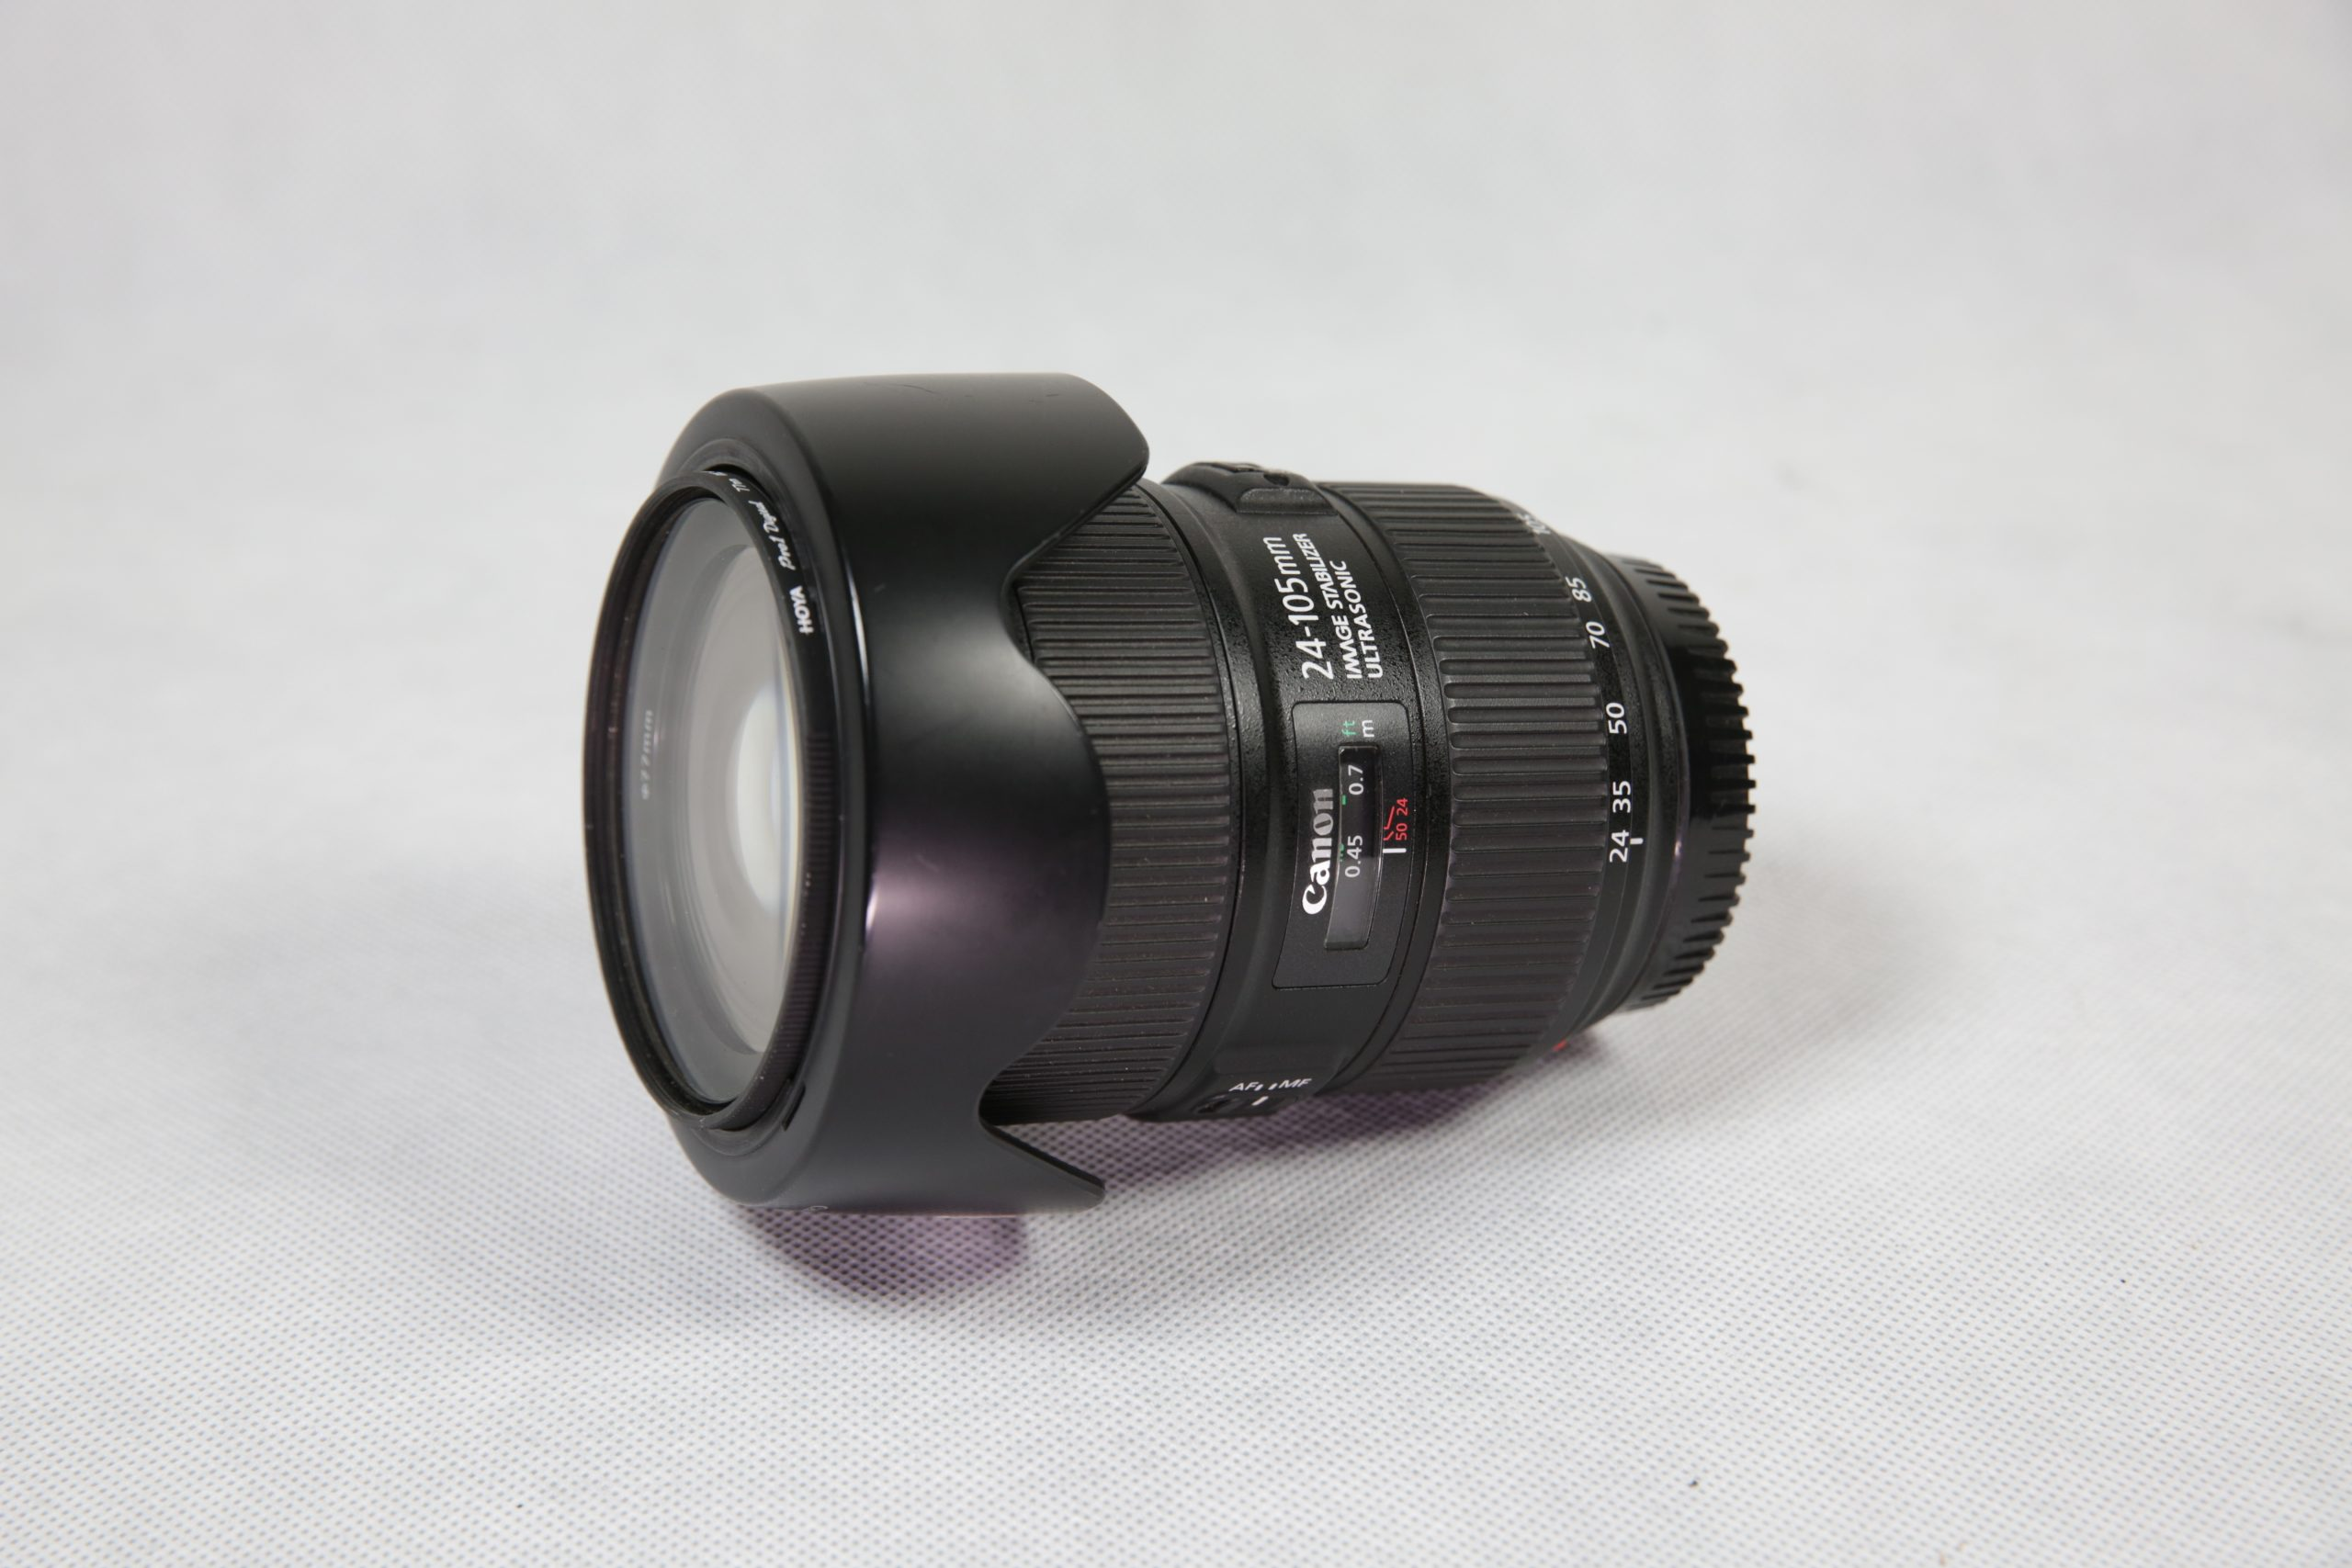 Canon 24-105mm f4.0 IS II USM